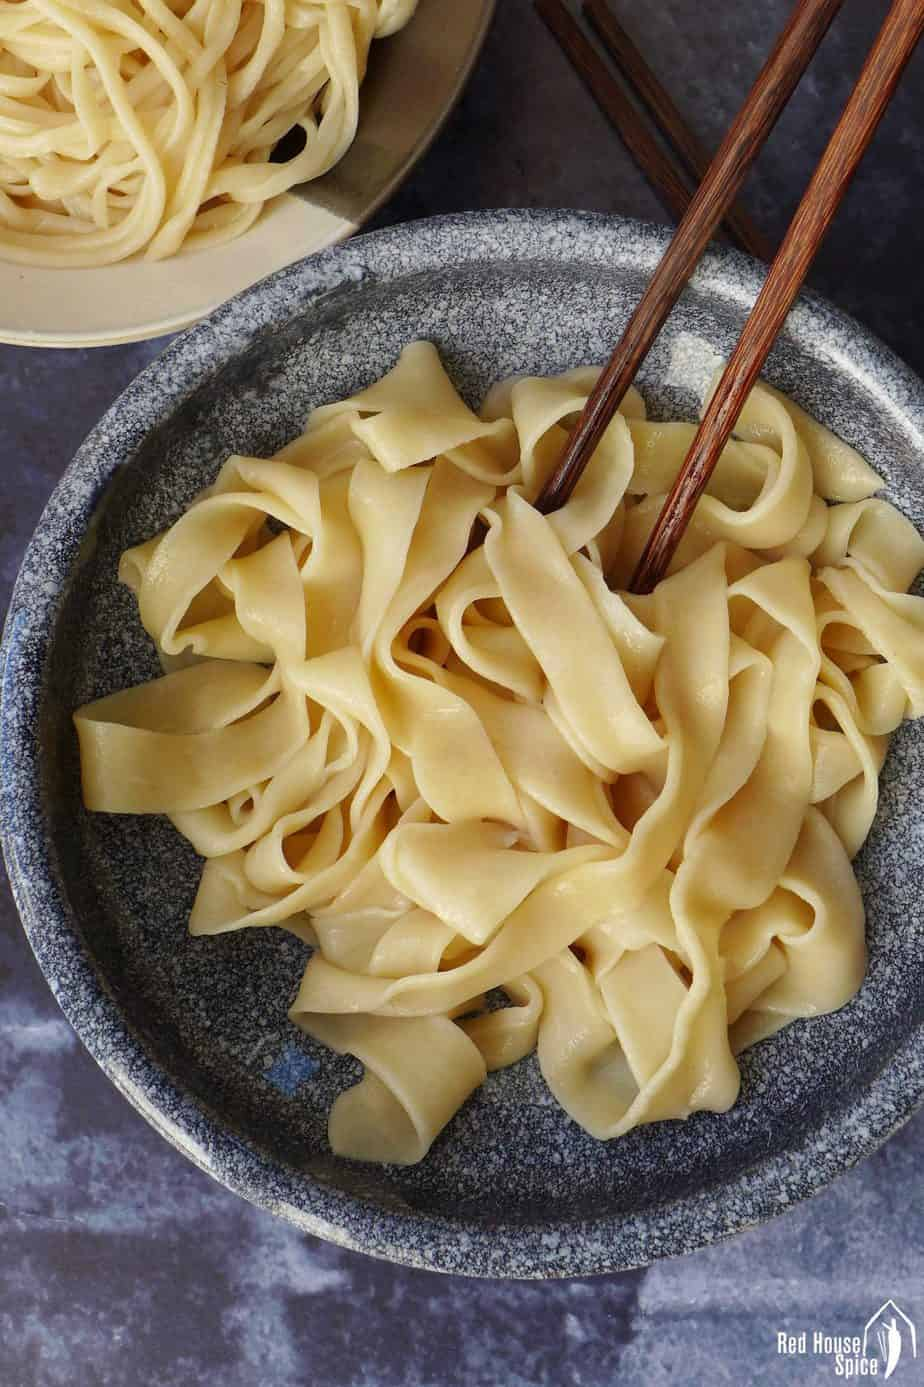 A bowl of plain, wide noodles pulled by hands